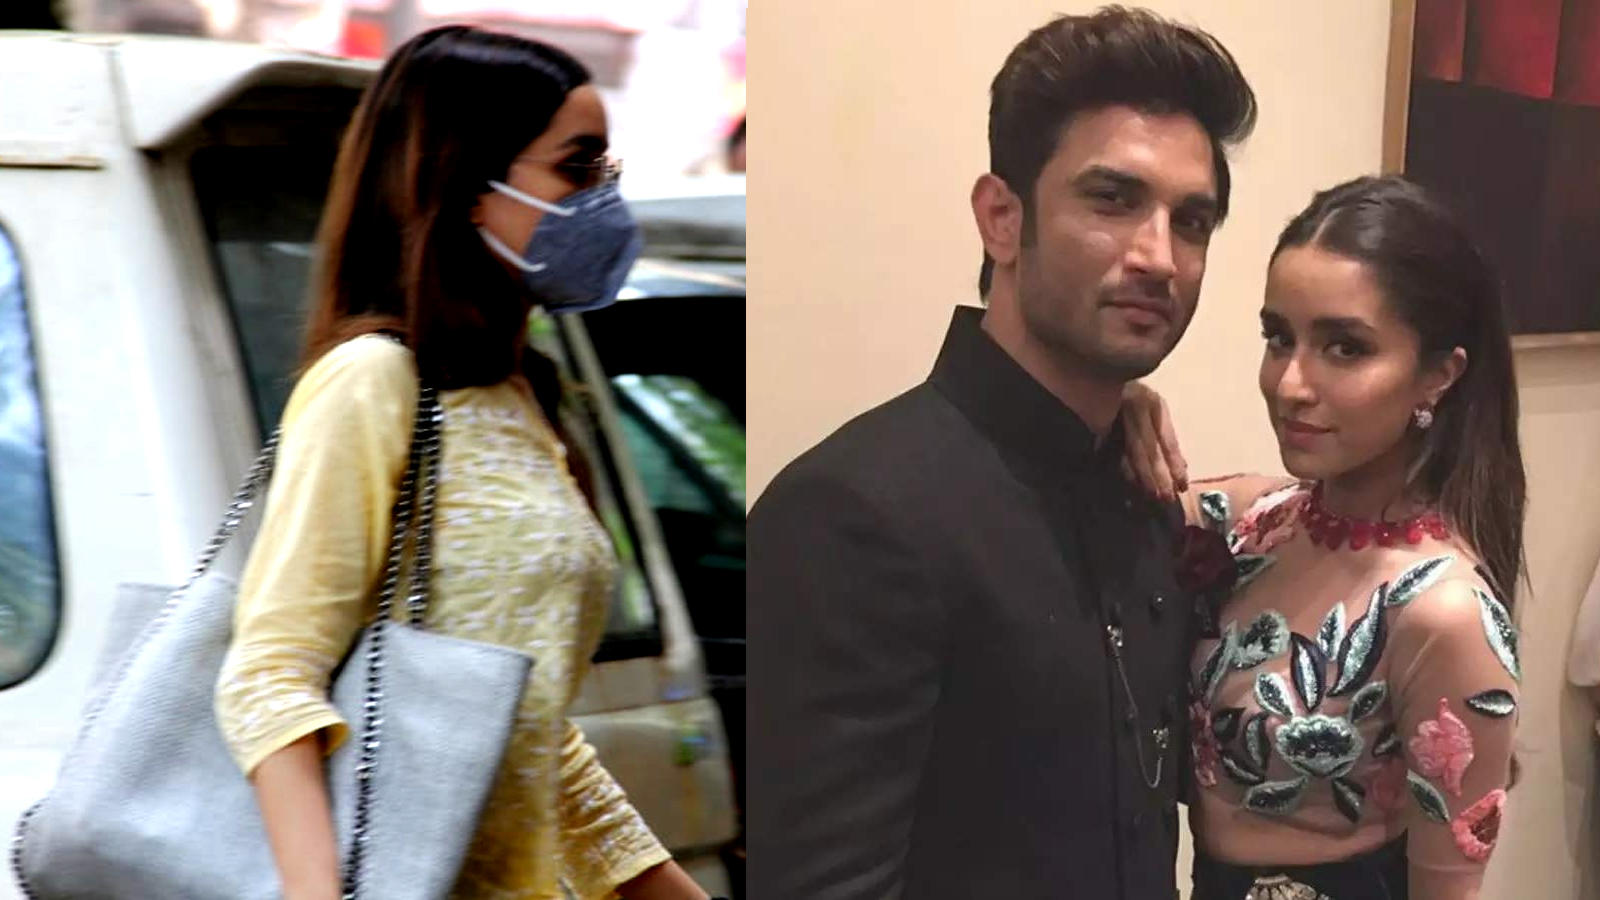 shraddha-kapoor-denies-consumption-of-drugs-at-sushant-singh-rajputs-farmhouse-party-ncb-probe-continues